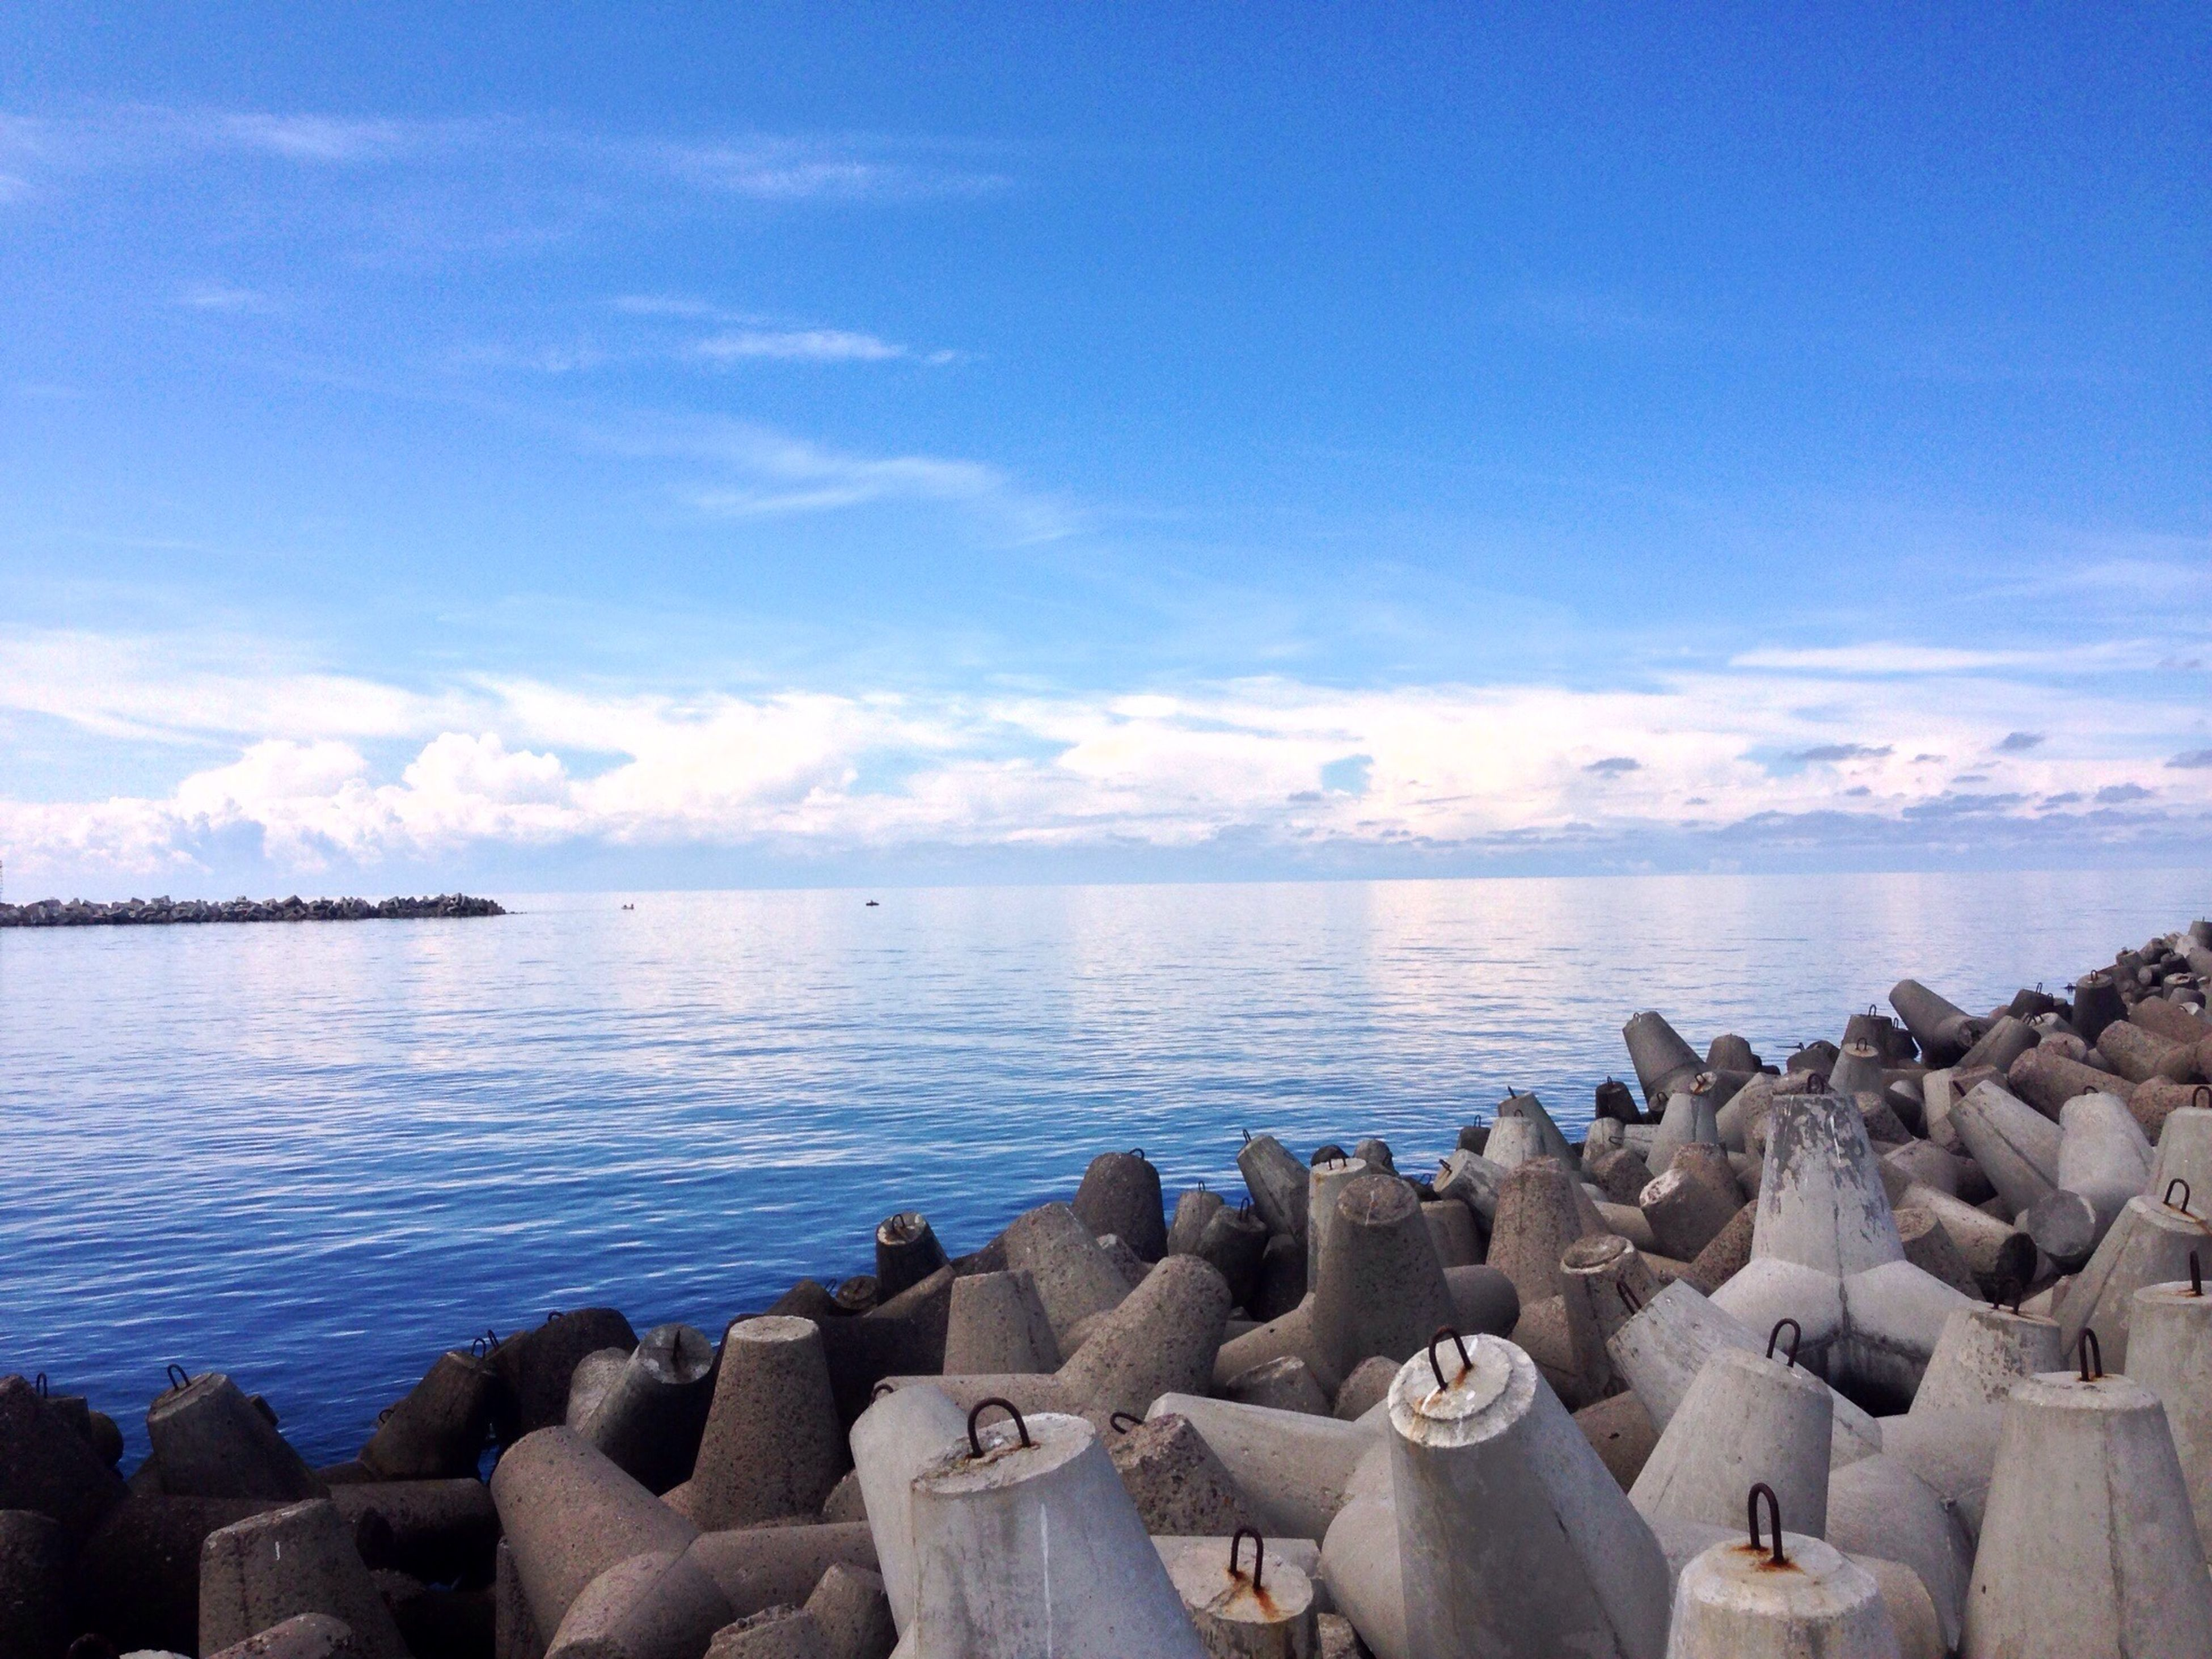 sea, water, horizon over water, sky, scenics, tranquil scene, blue, tranquility, beauty in nature, nature, cloud - sky, rock - object, beach, idyllic, cloud, day, shore, outdoors, sunlight, stone - object